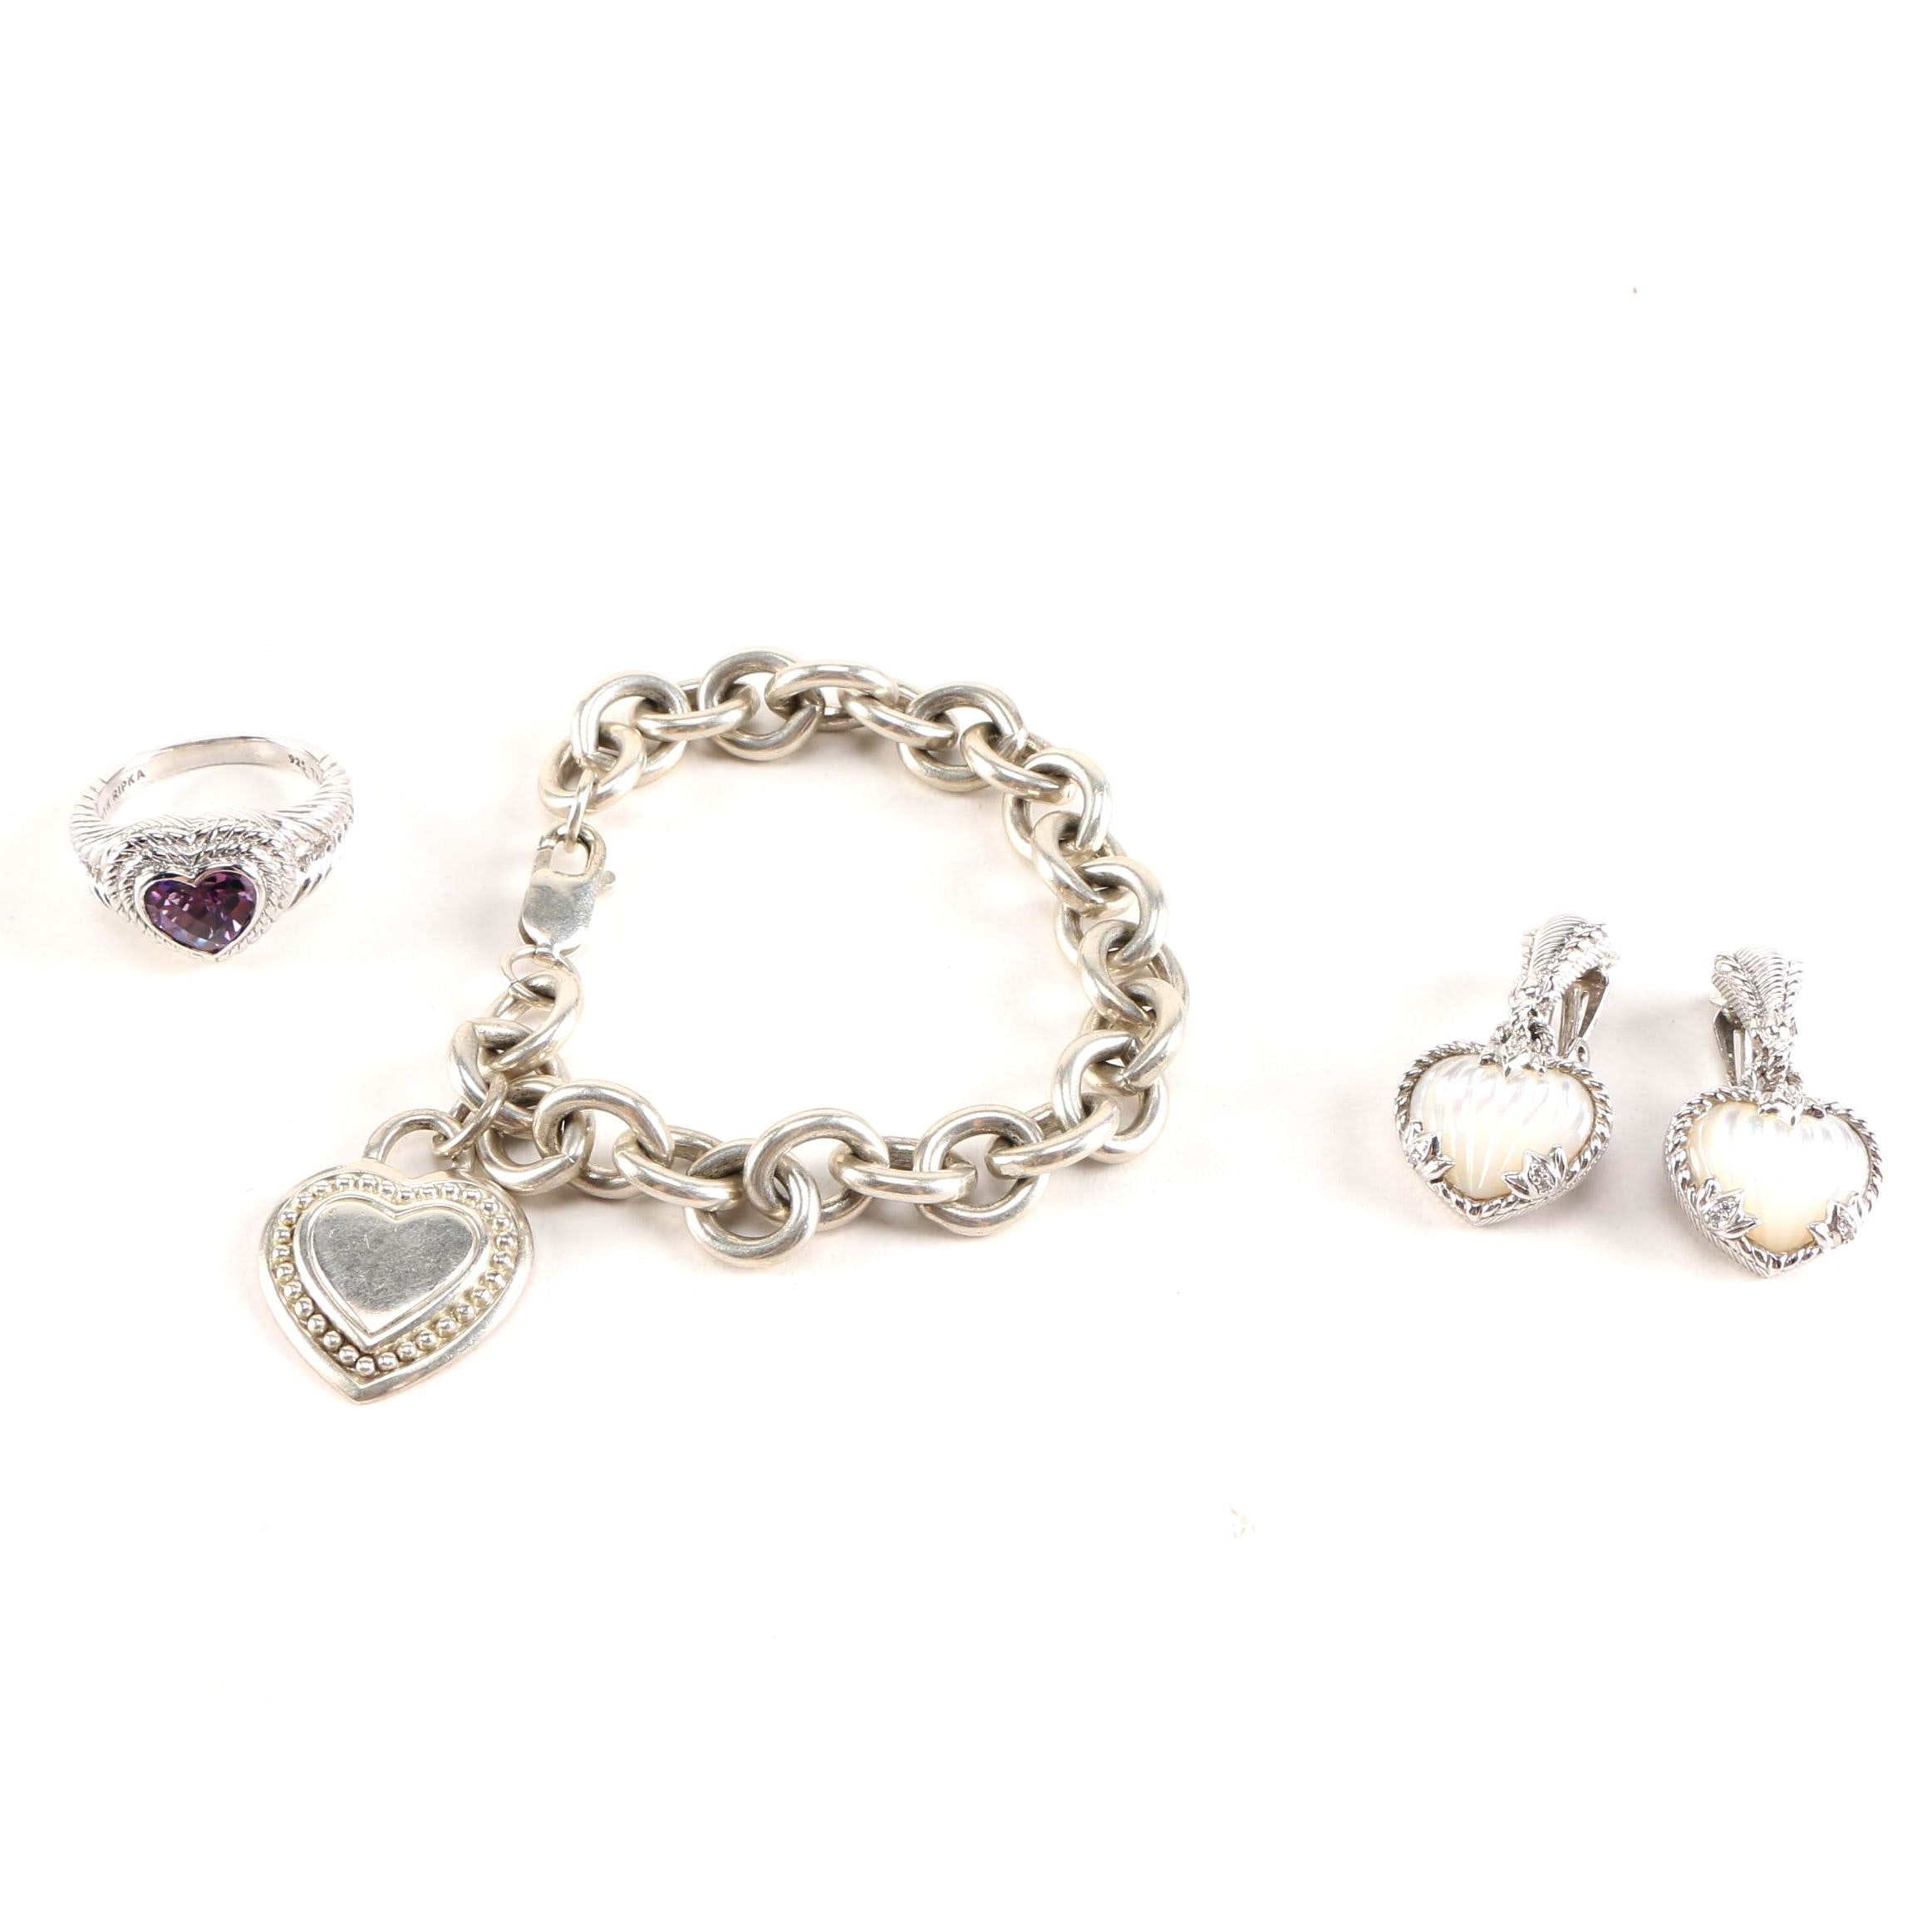 Judith Ripka Sterling Silver Jewelry Assortment With Gemstones